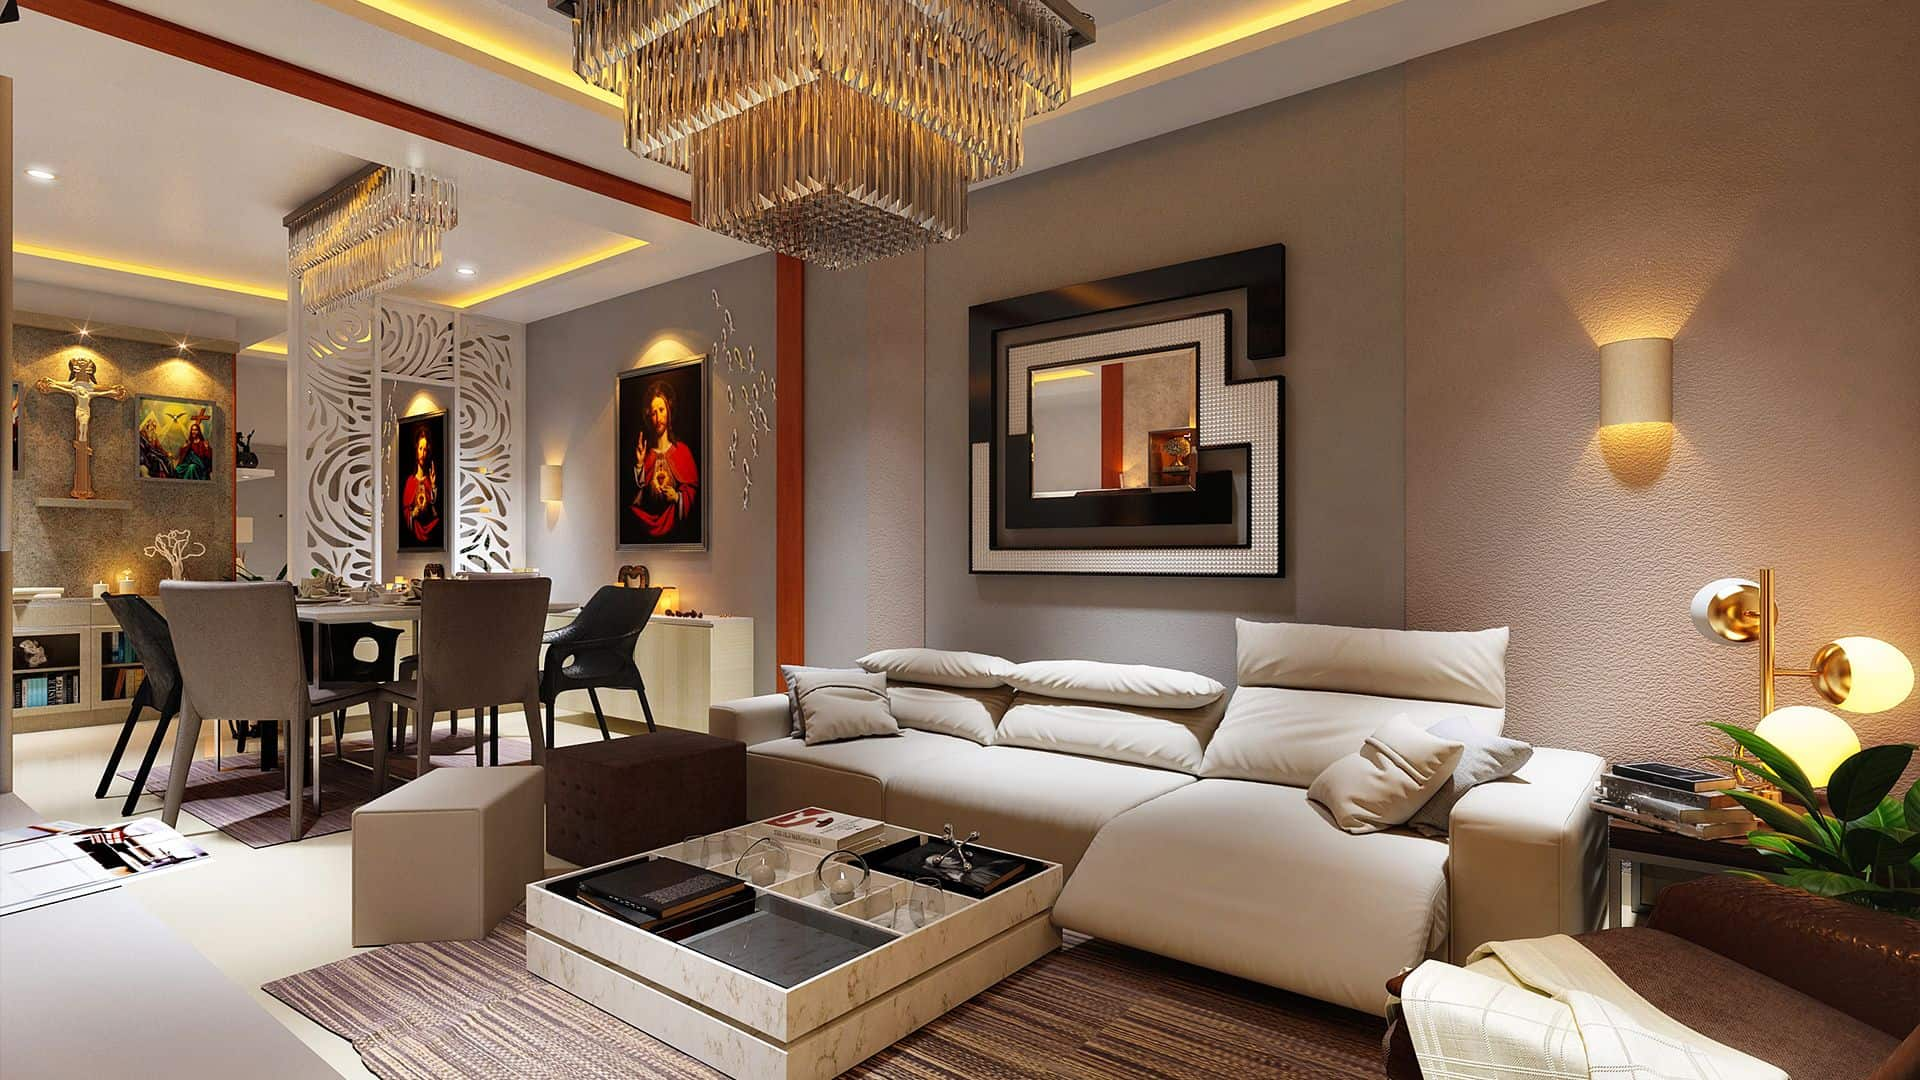 Interior Designer- The Comfort Is Visible To All The Family Member